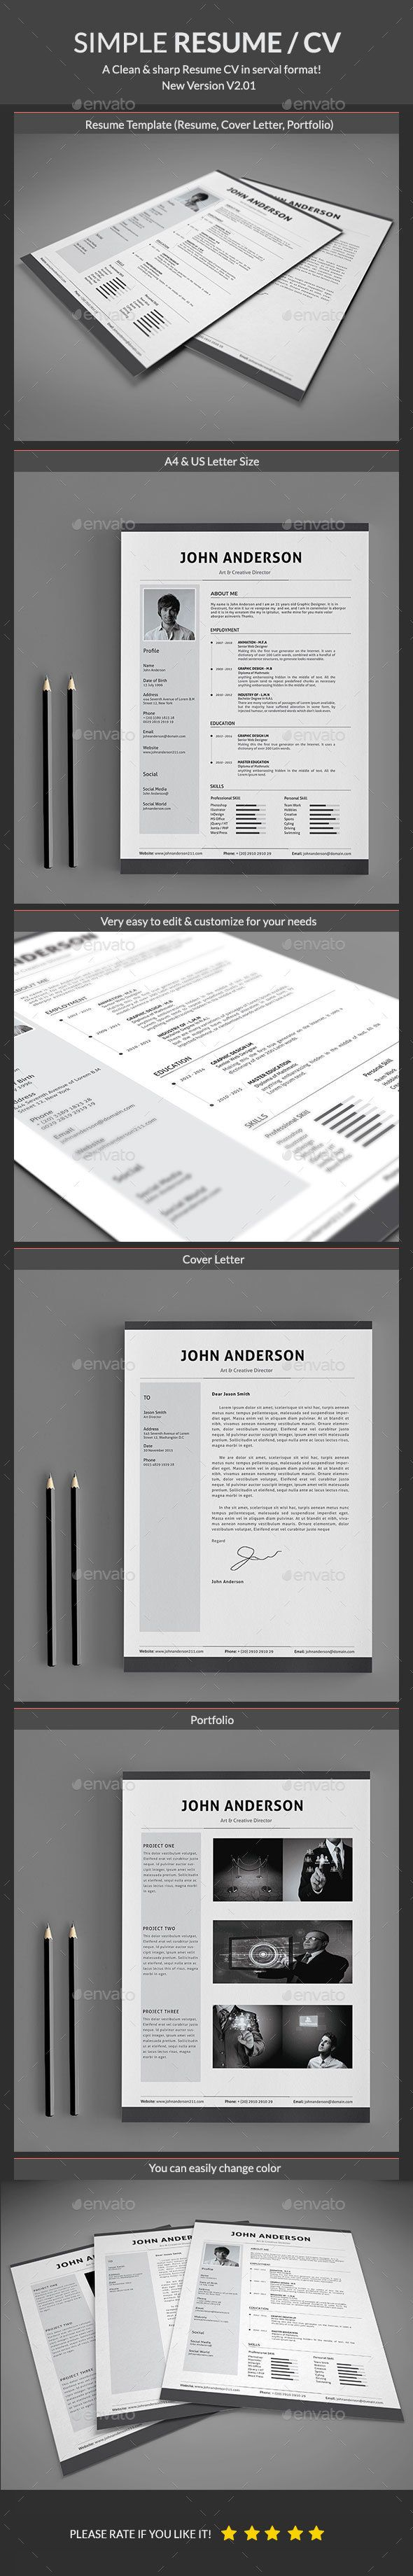 Resume Template Psd Design Download HttpGraphicriverNetItem